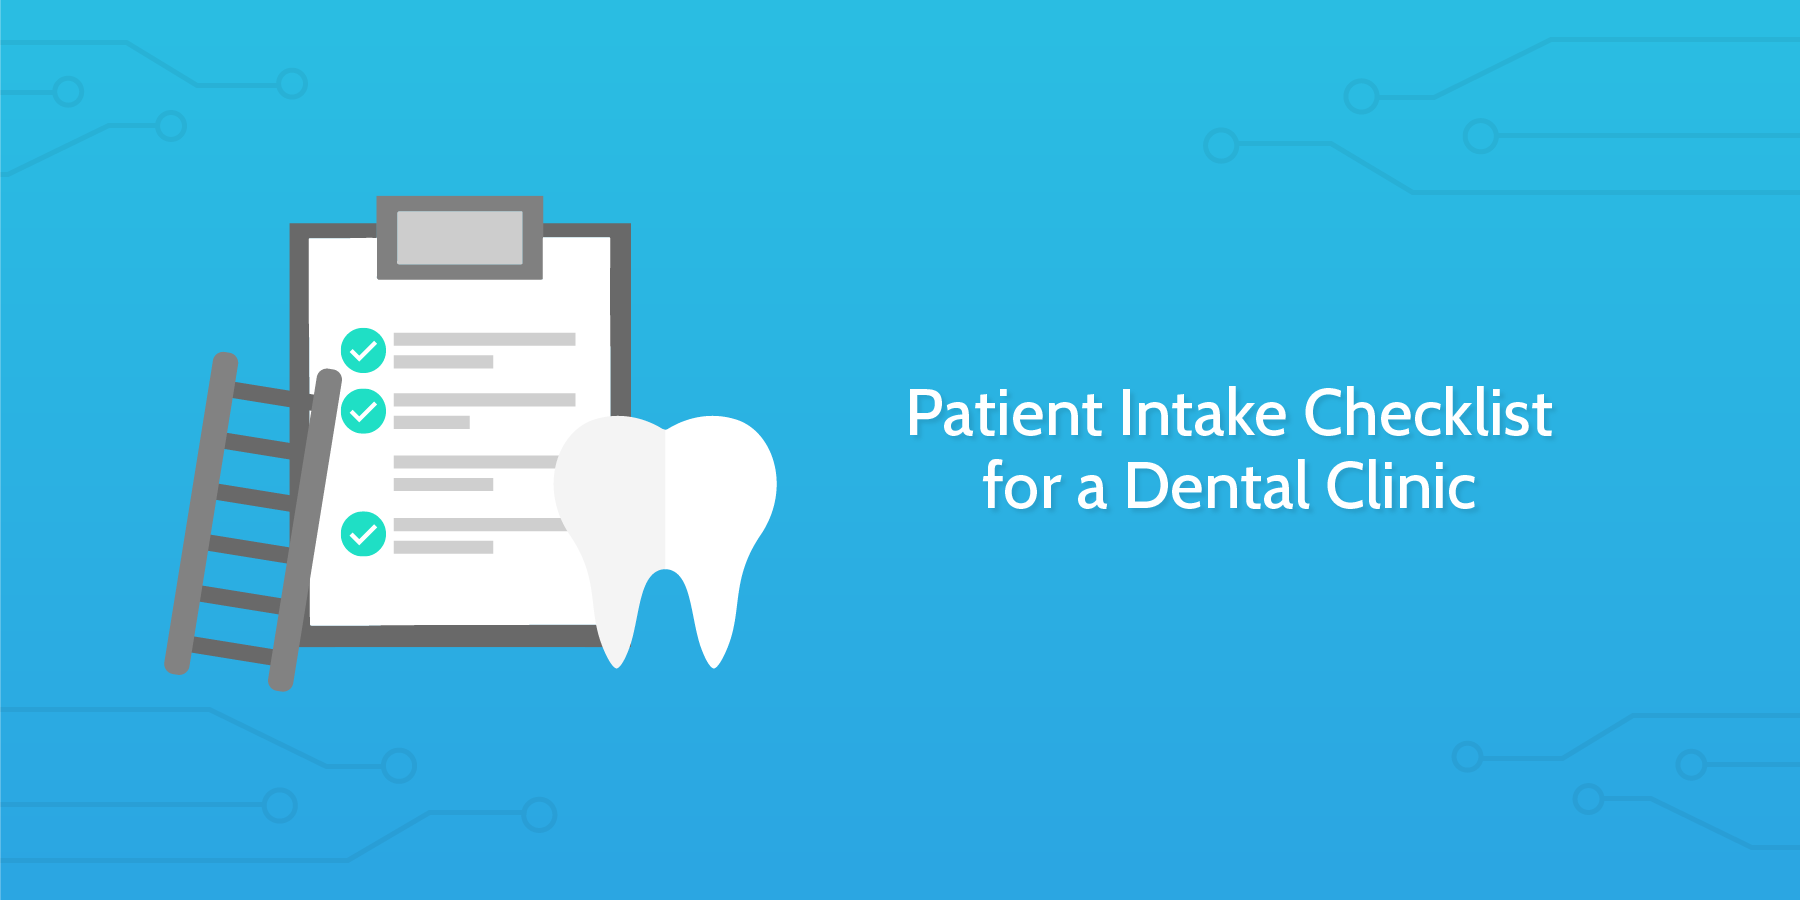 patient intake checklist for a dental clinic